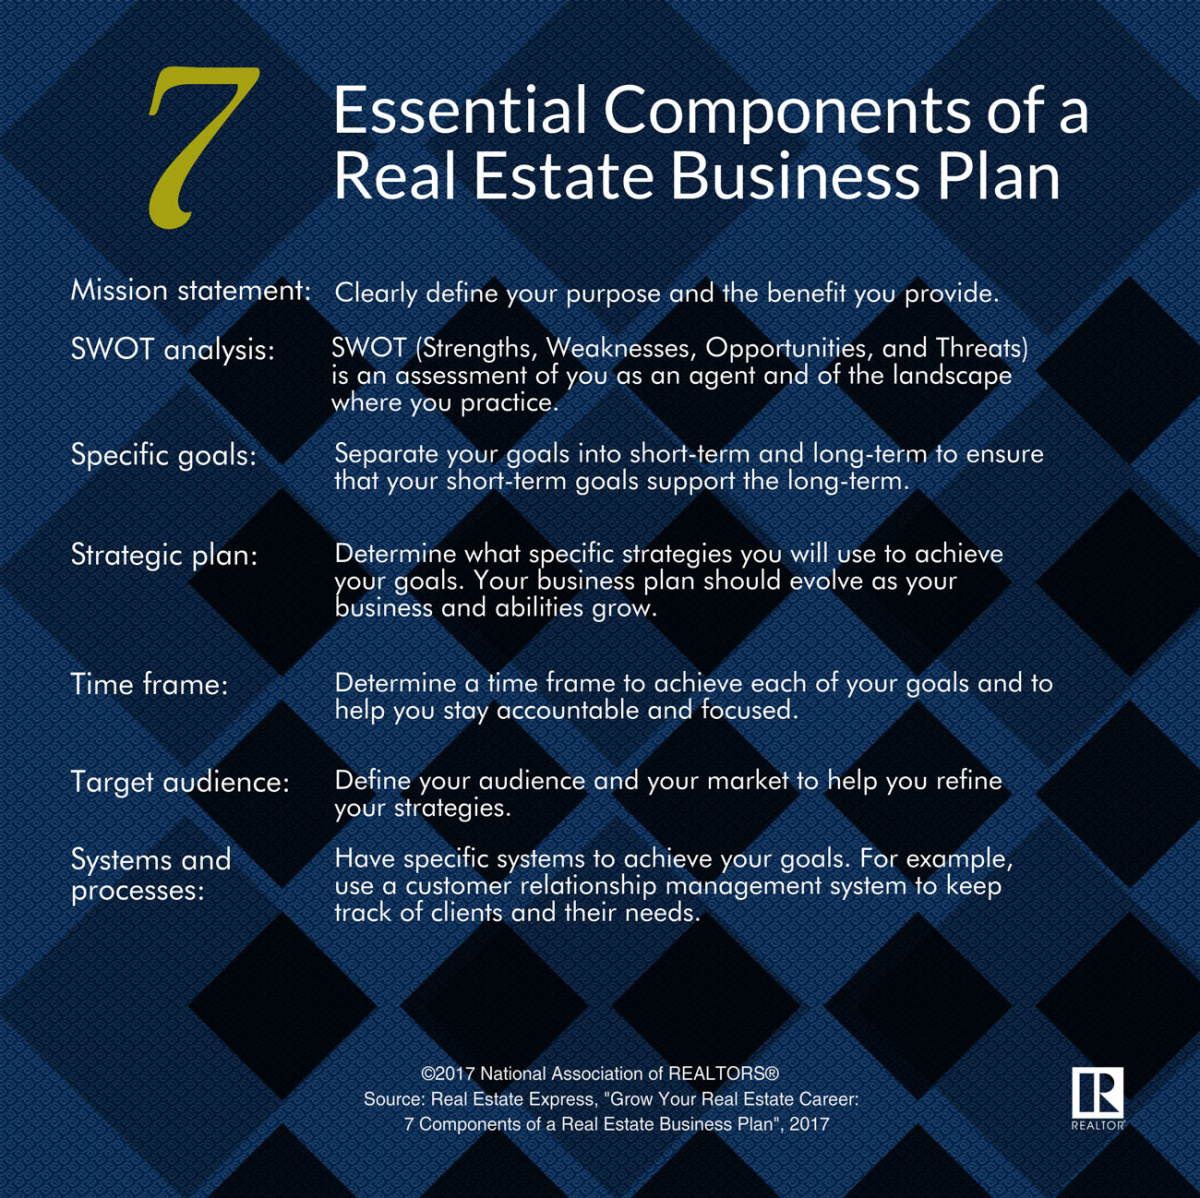 business plan for a real estate Start up real estate investing business plan having a plan is a necessity in real estate investing trying to make decisions on your own without a specific plan of action can lead to disastrous consequences.